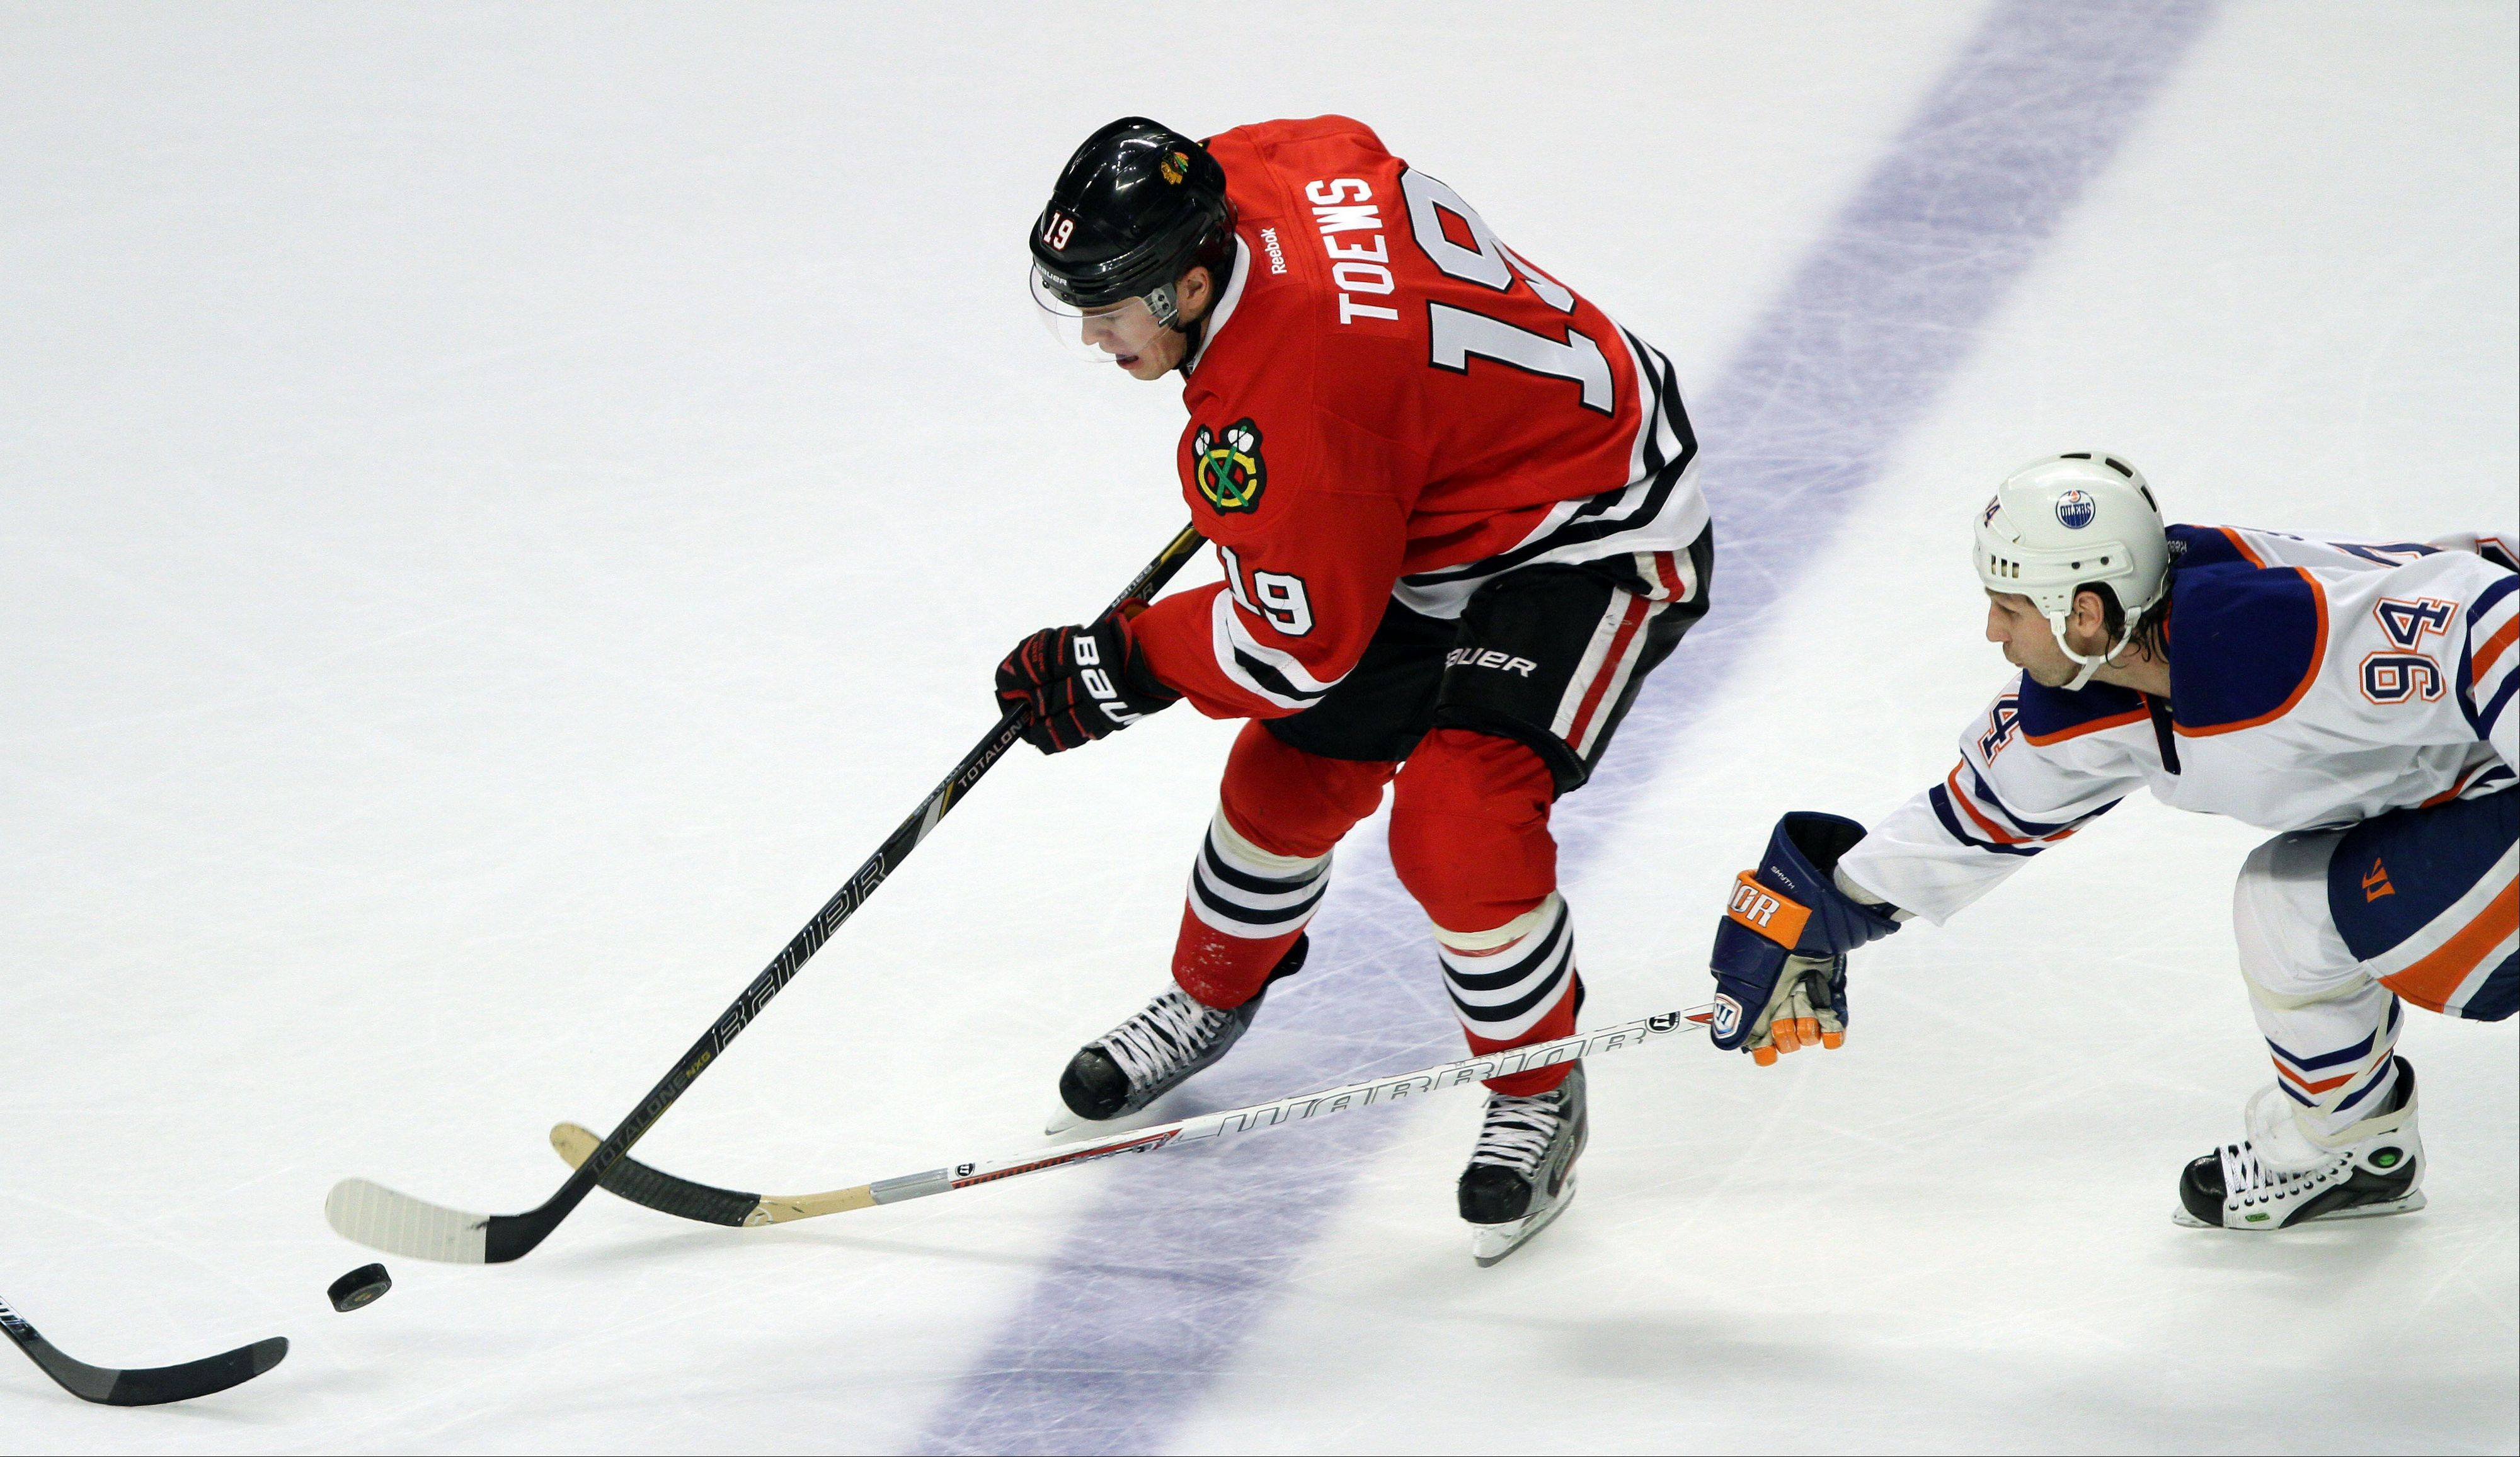 Chicago Blackhawks center Jonathan Toews drives on Edmonton Oilers left wing Ryan Smyth during their game Sunday night at the United Center in Chicago.